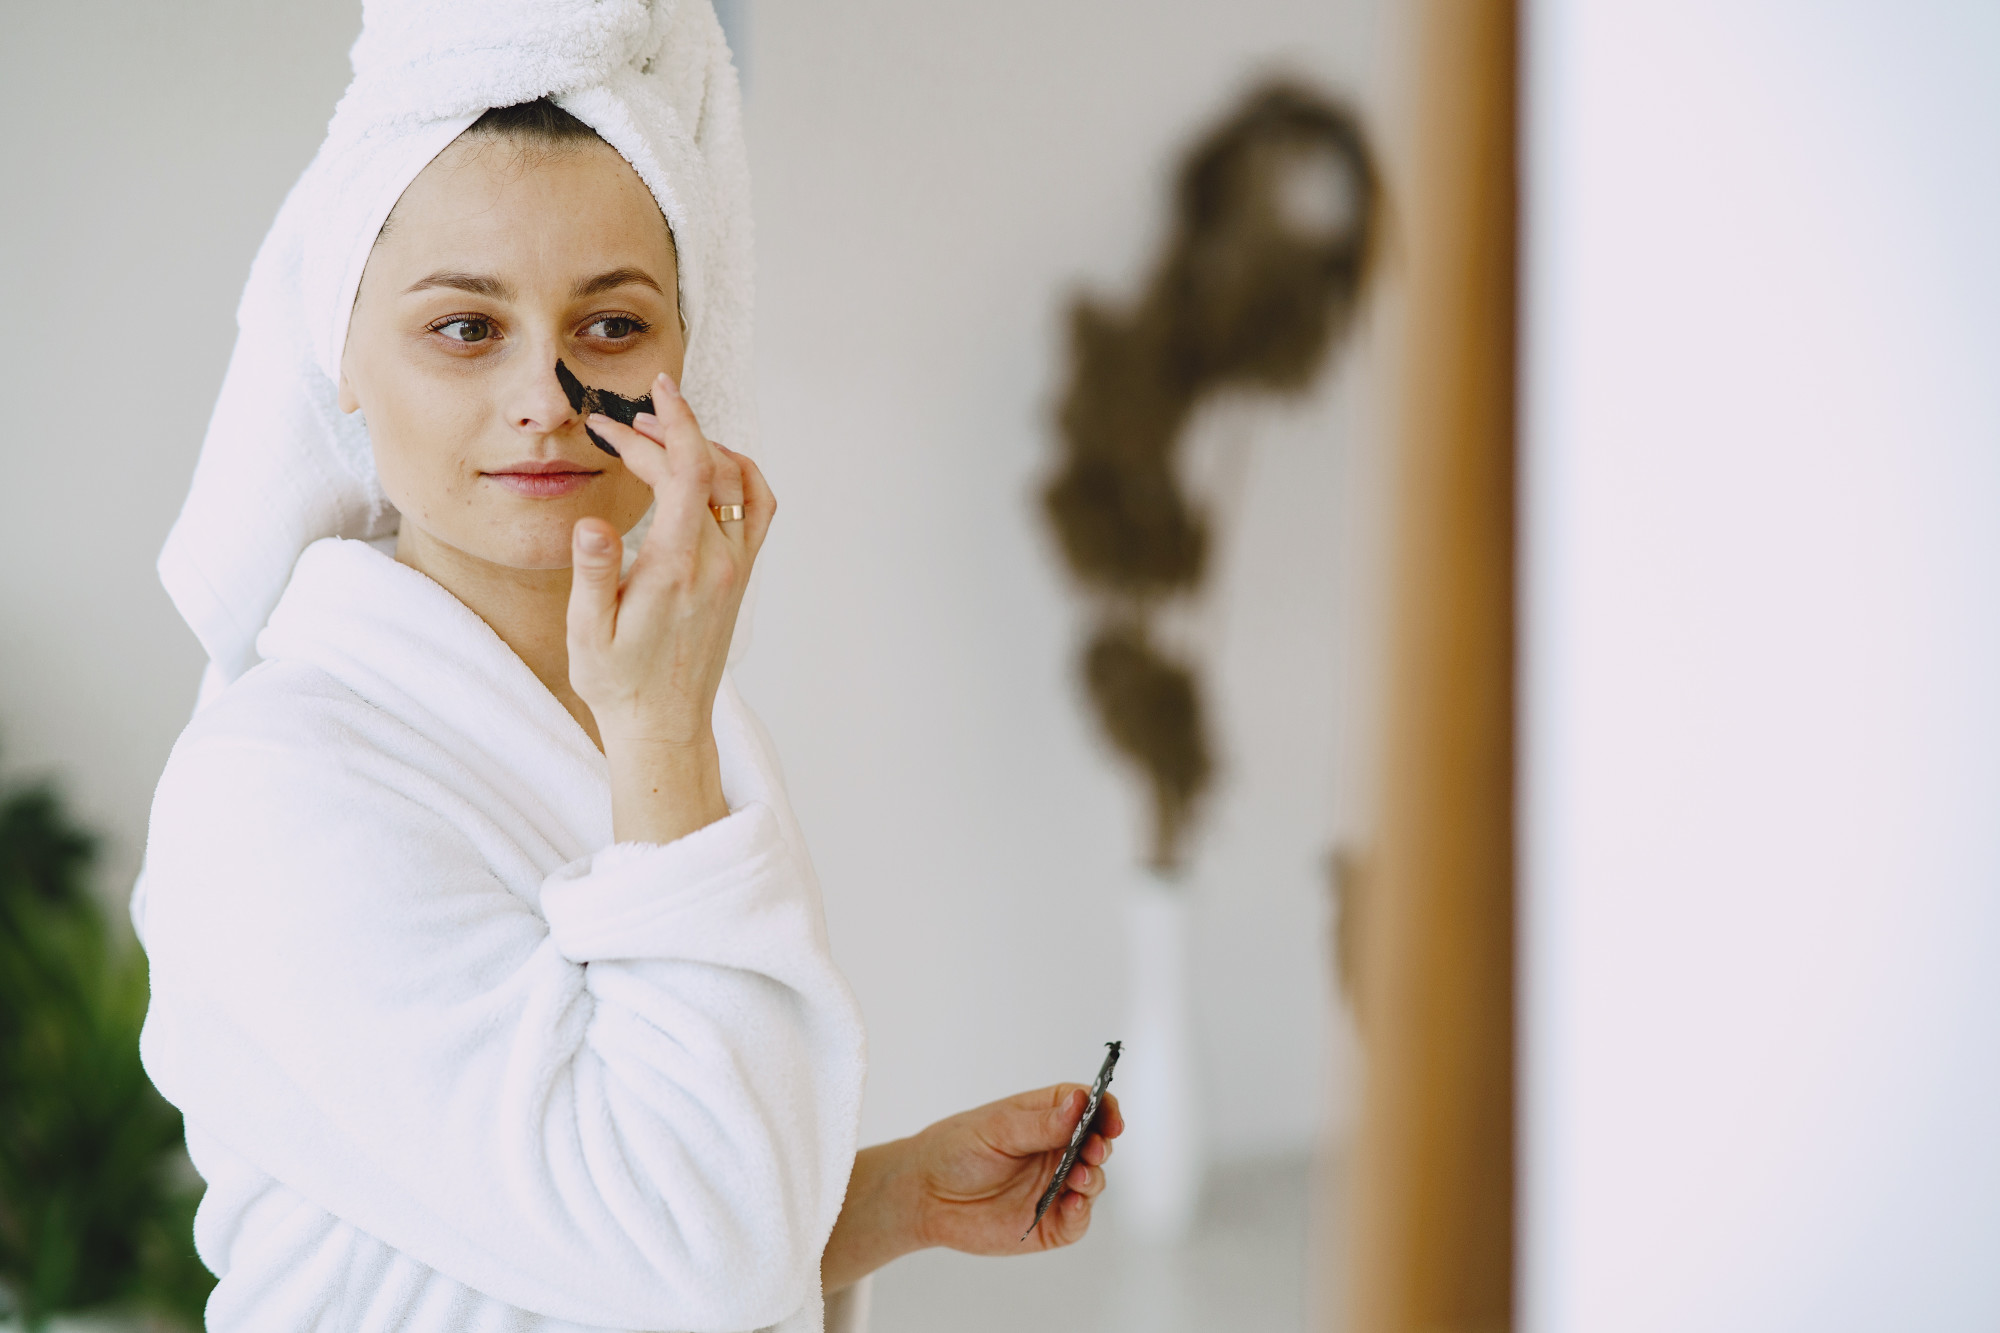 The Best Natural Anti Aging Skincare Products in Your 40's and Beyond